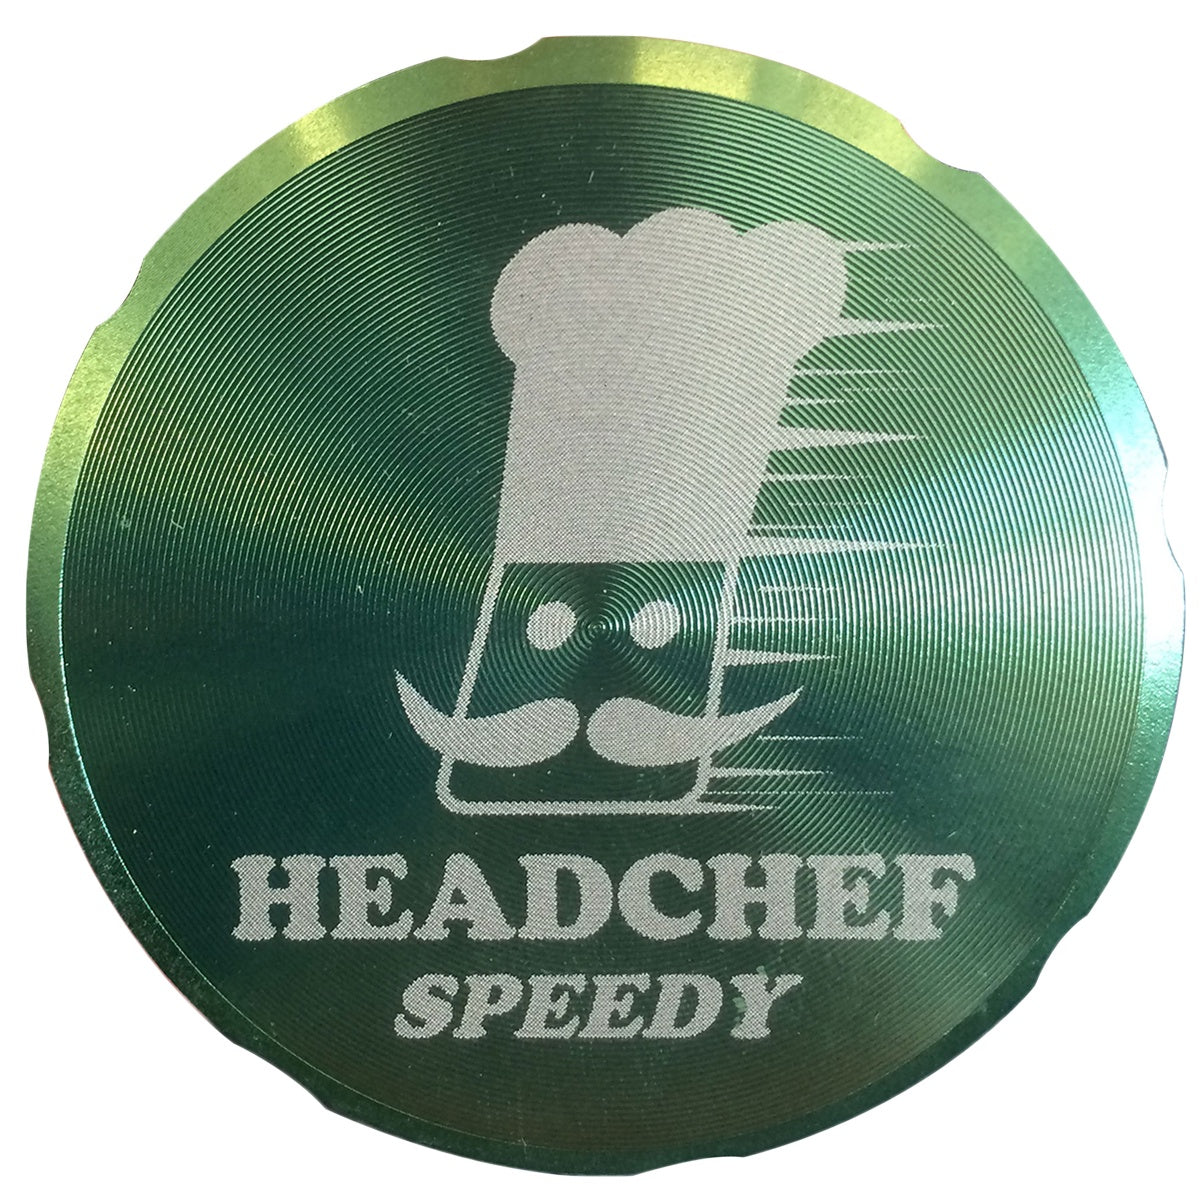 Cheeky One SPEEDY 50mm 4 Part Grinder - GREEN